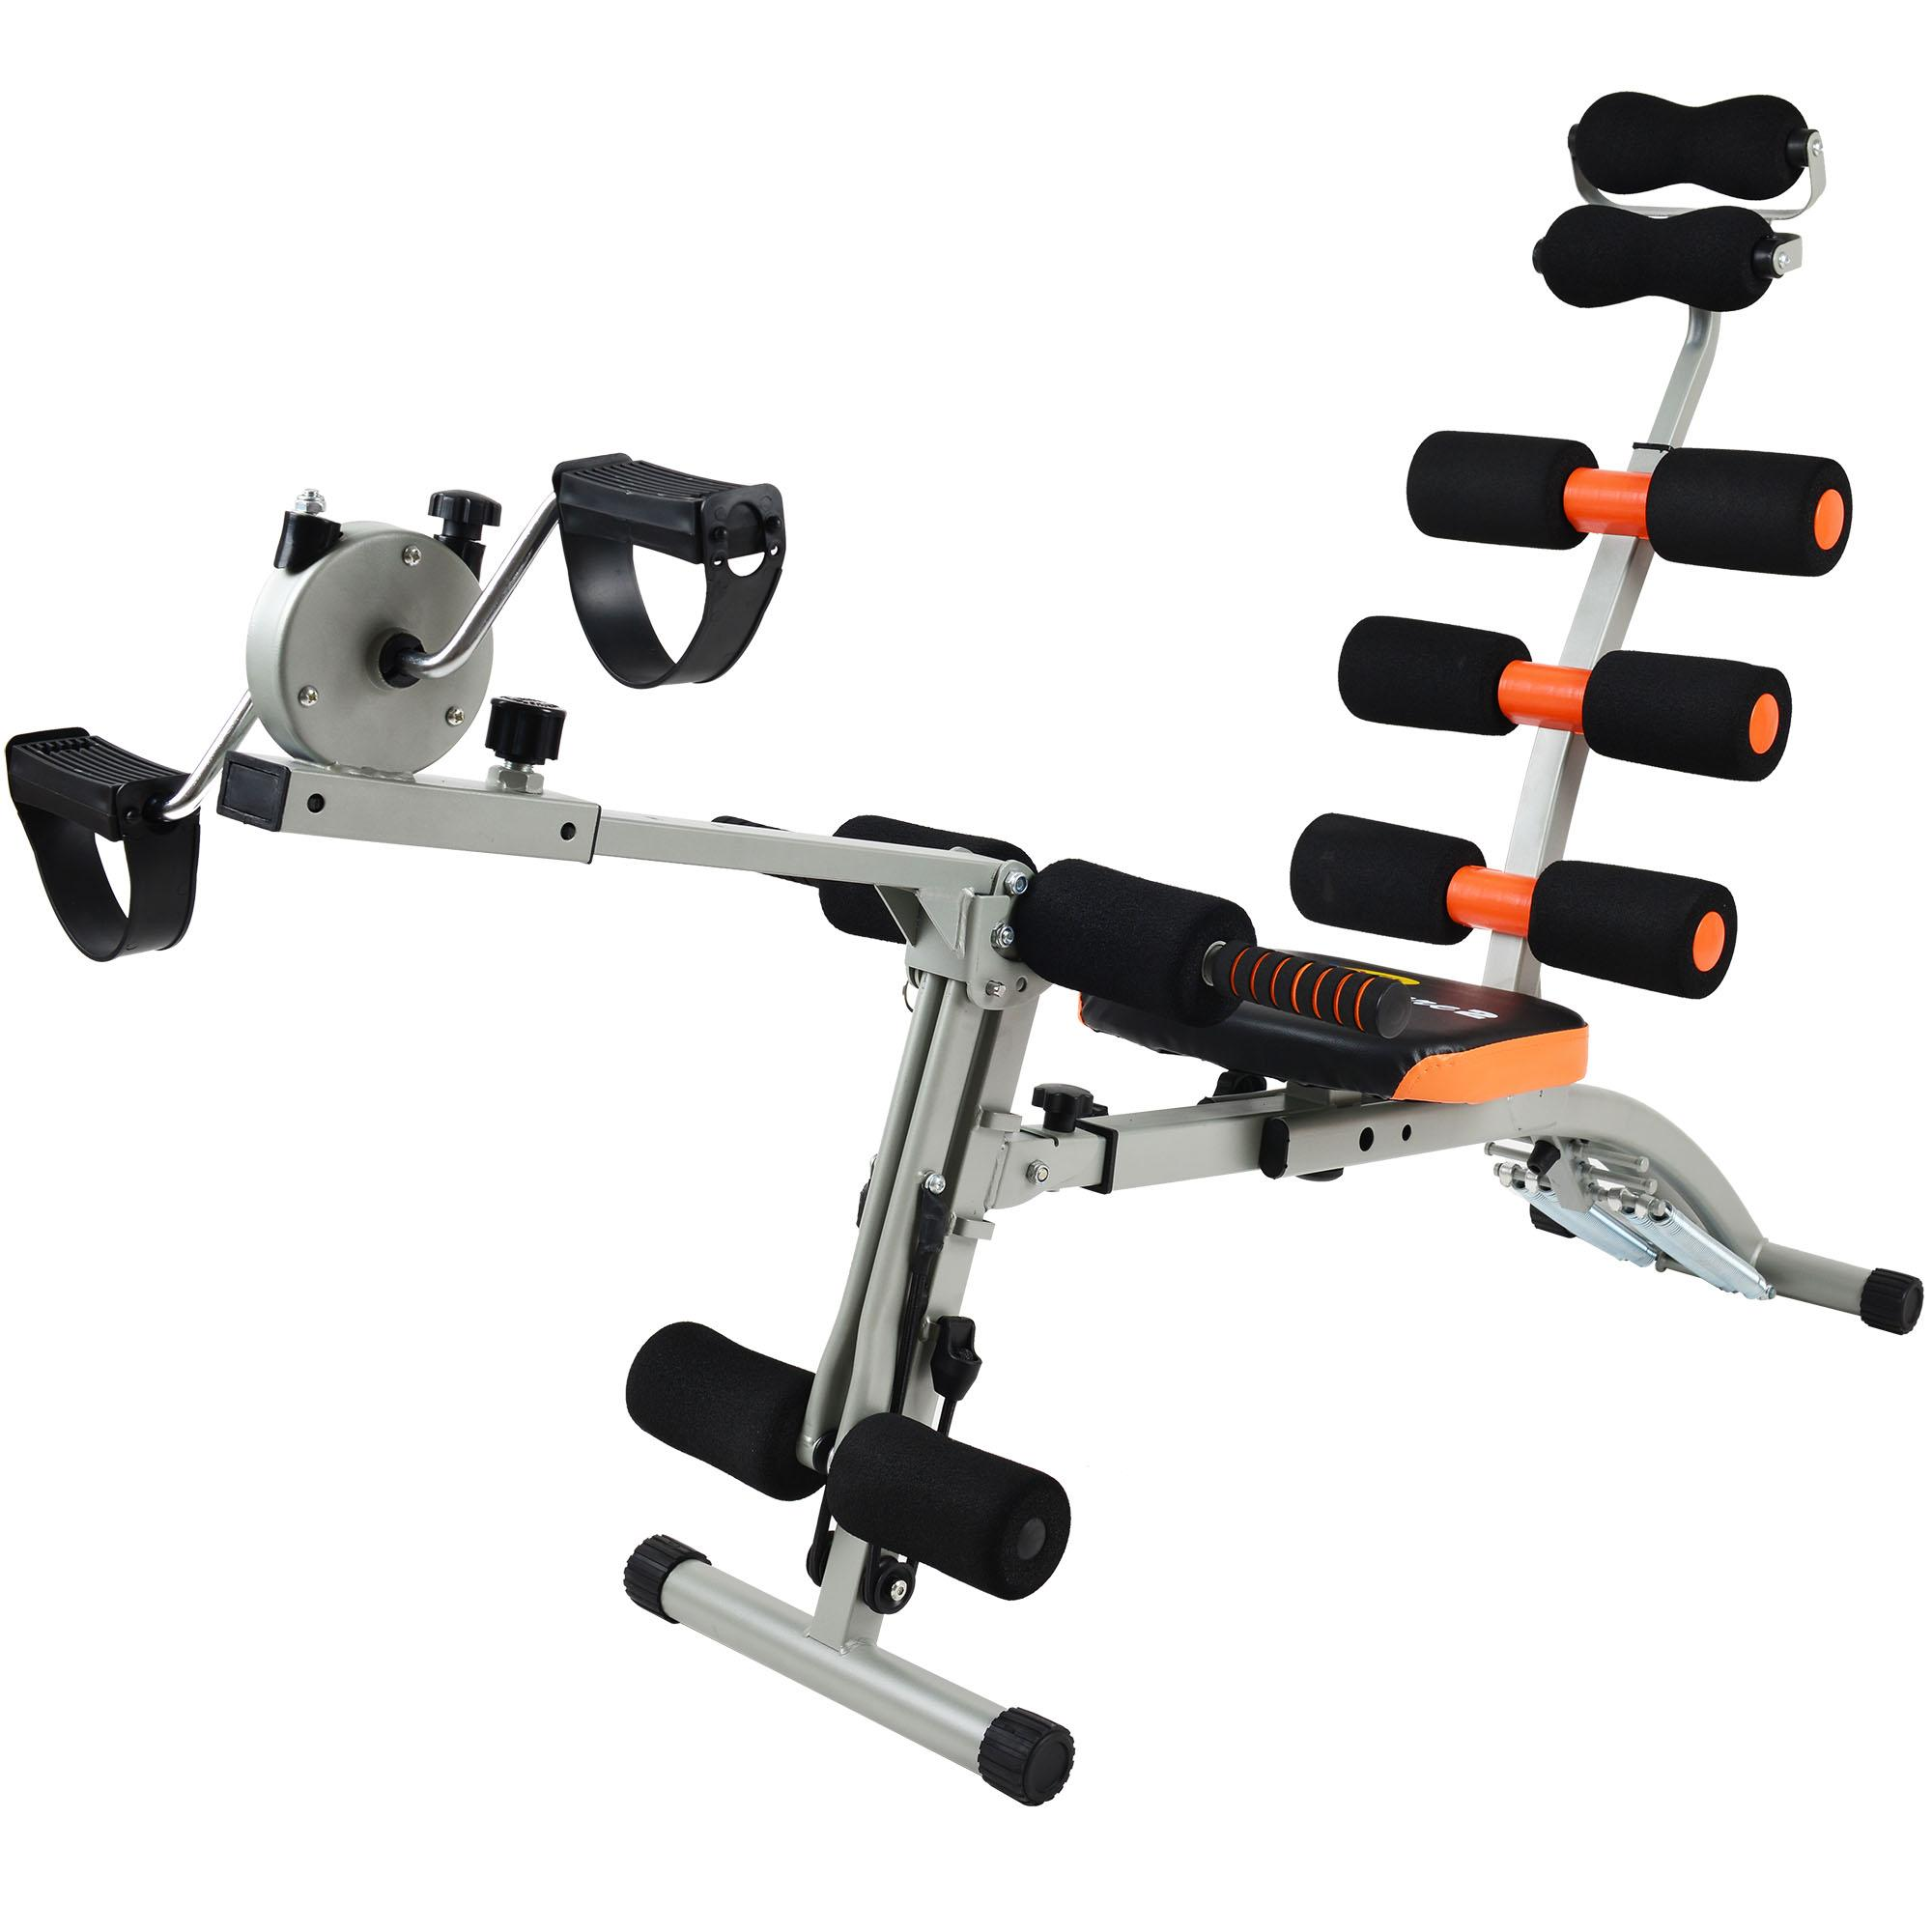 BFIT Six Pack Care 2 10in1 Multi Functions